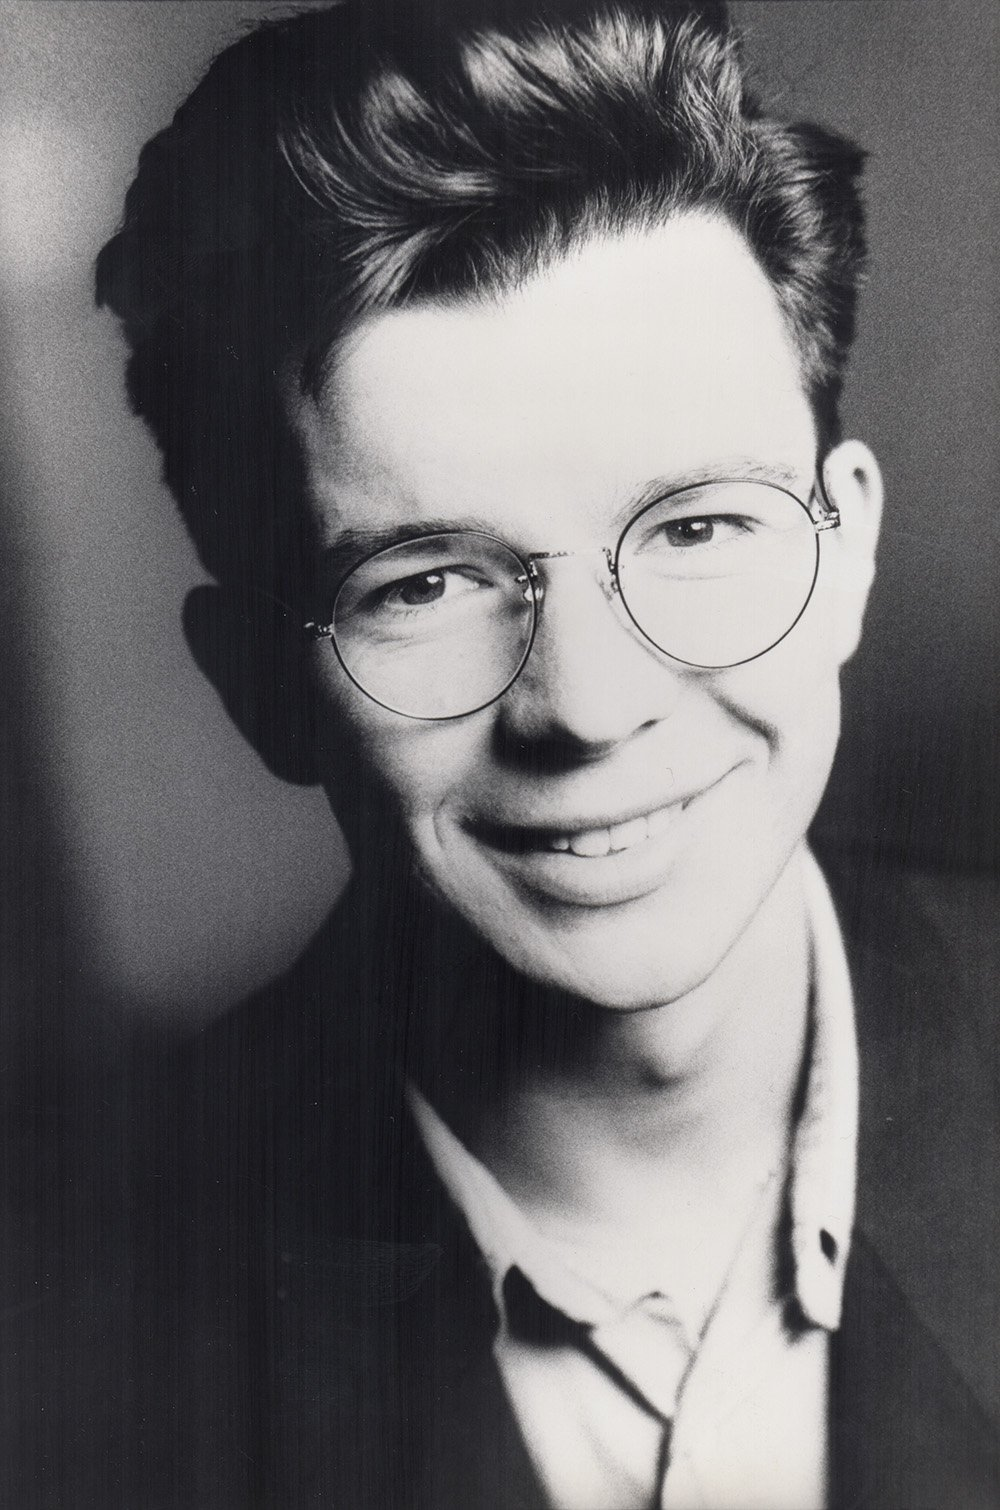 Rick Astley On Twitter Quot Throwback To My Rickmoranis53